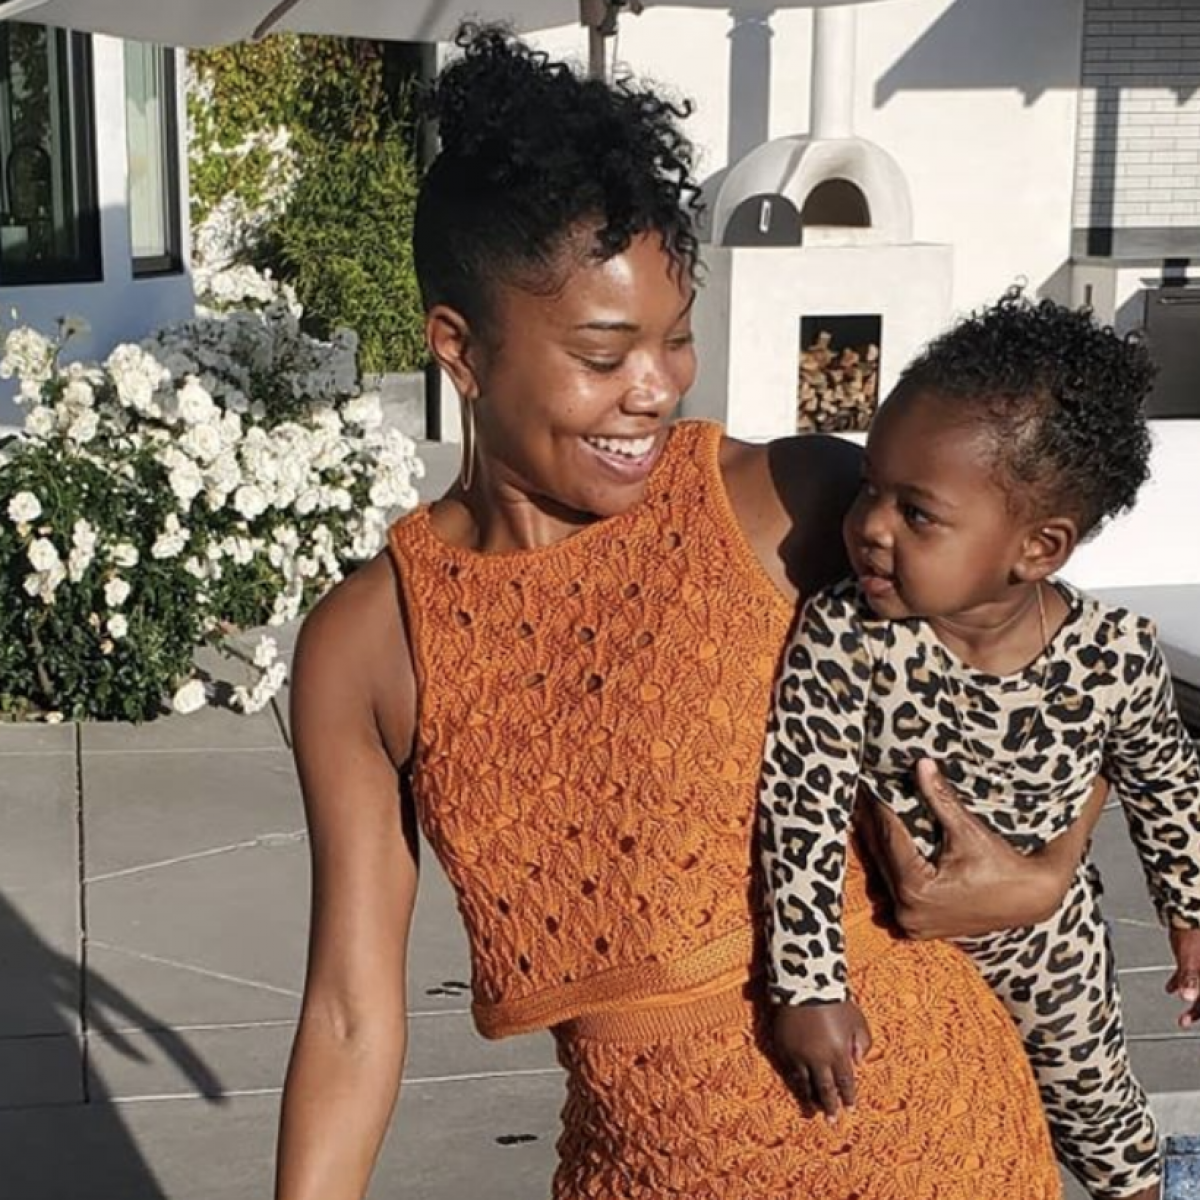 Gabrielle Union's Daughter Kaavia Wasn't Here For The Fruit Snack Challenge